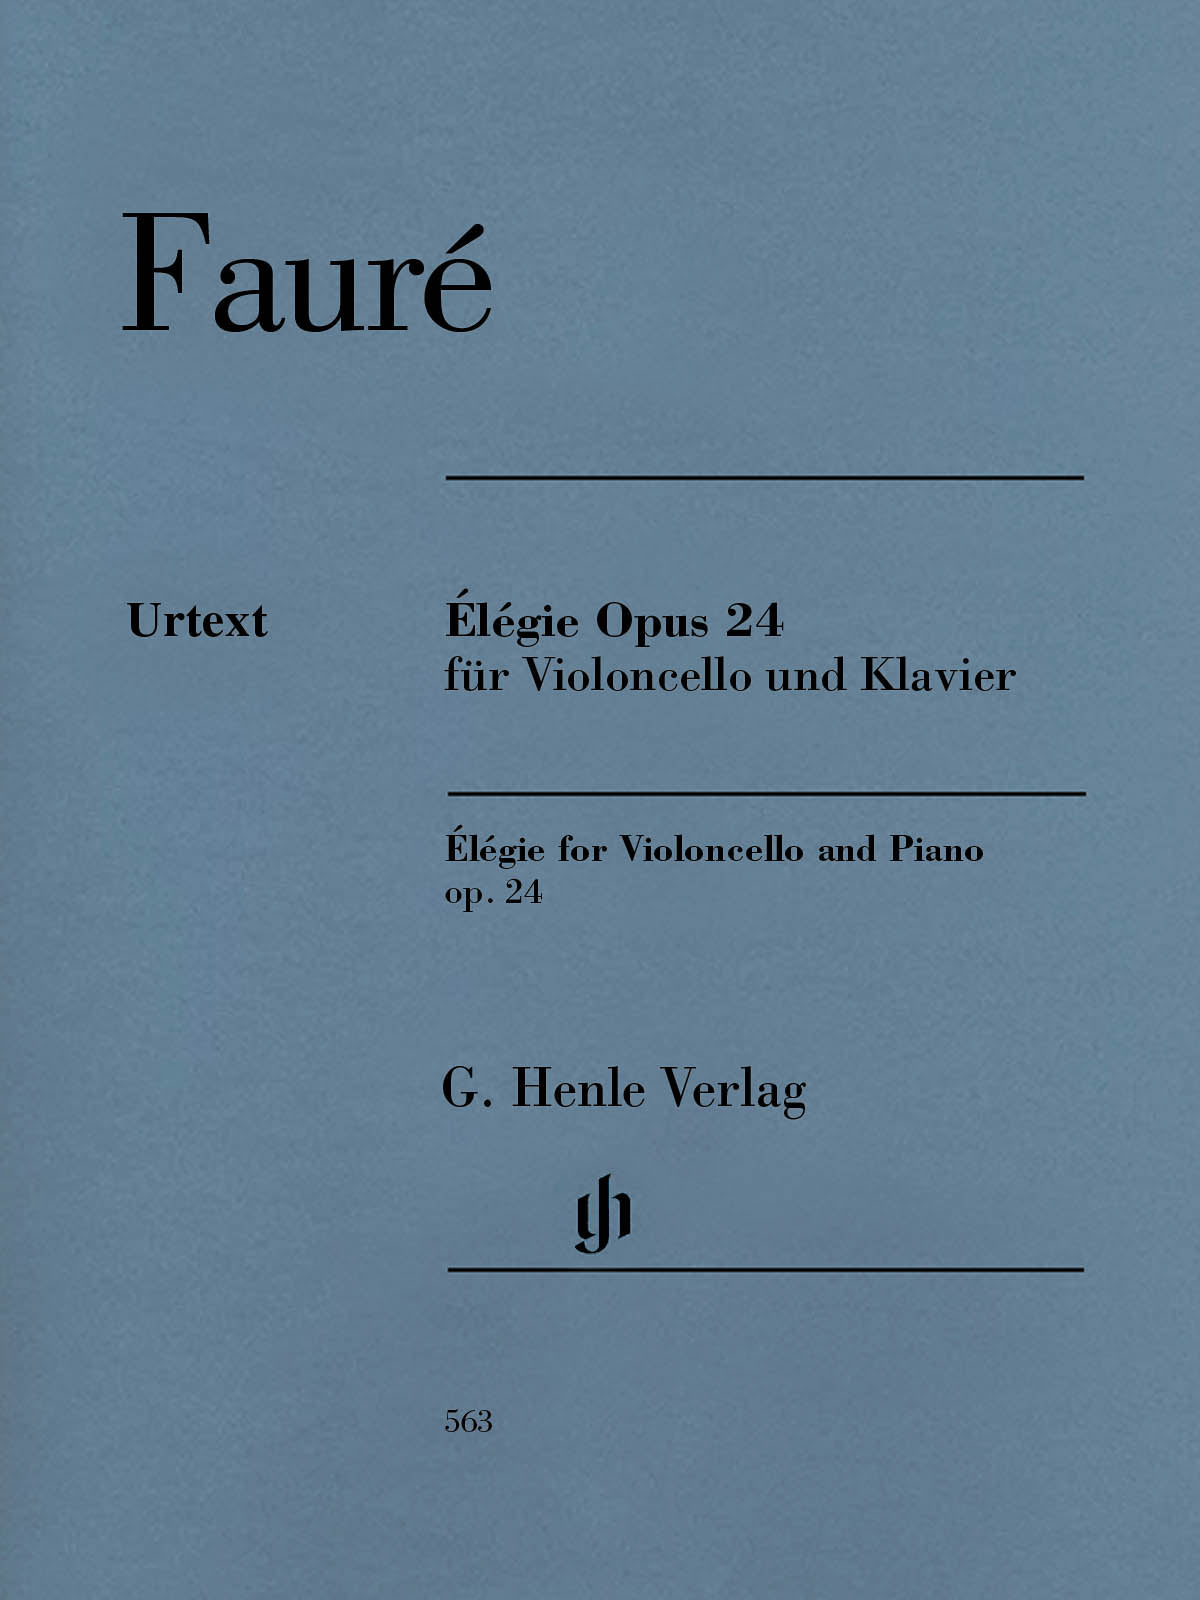 Fauré: Élégie for Cello and Piano, Op. 24